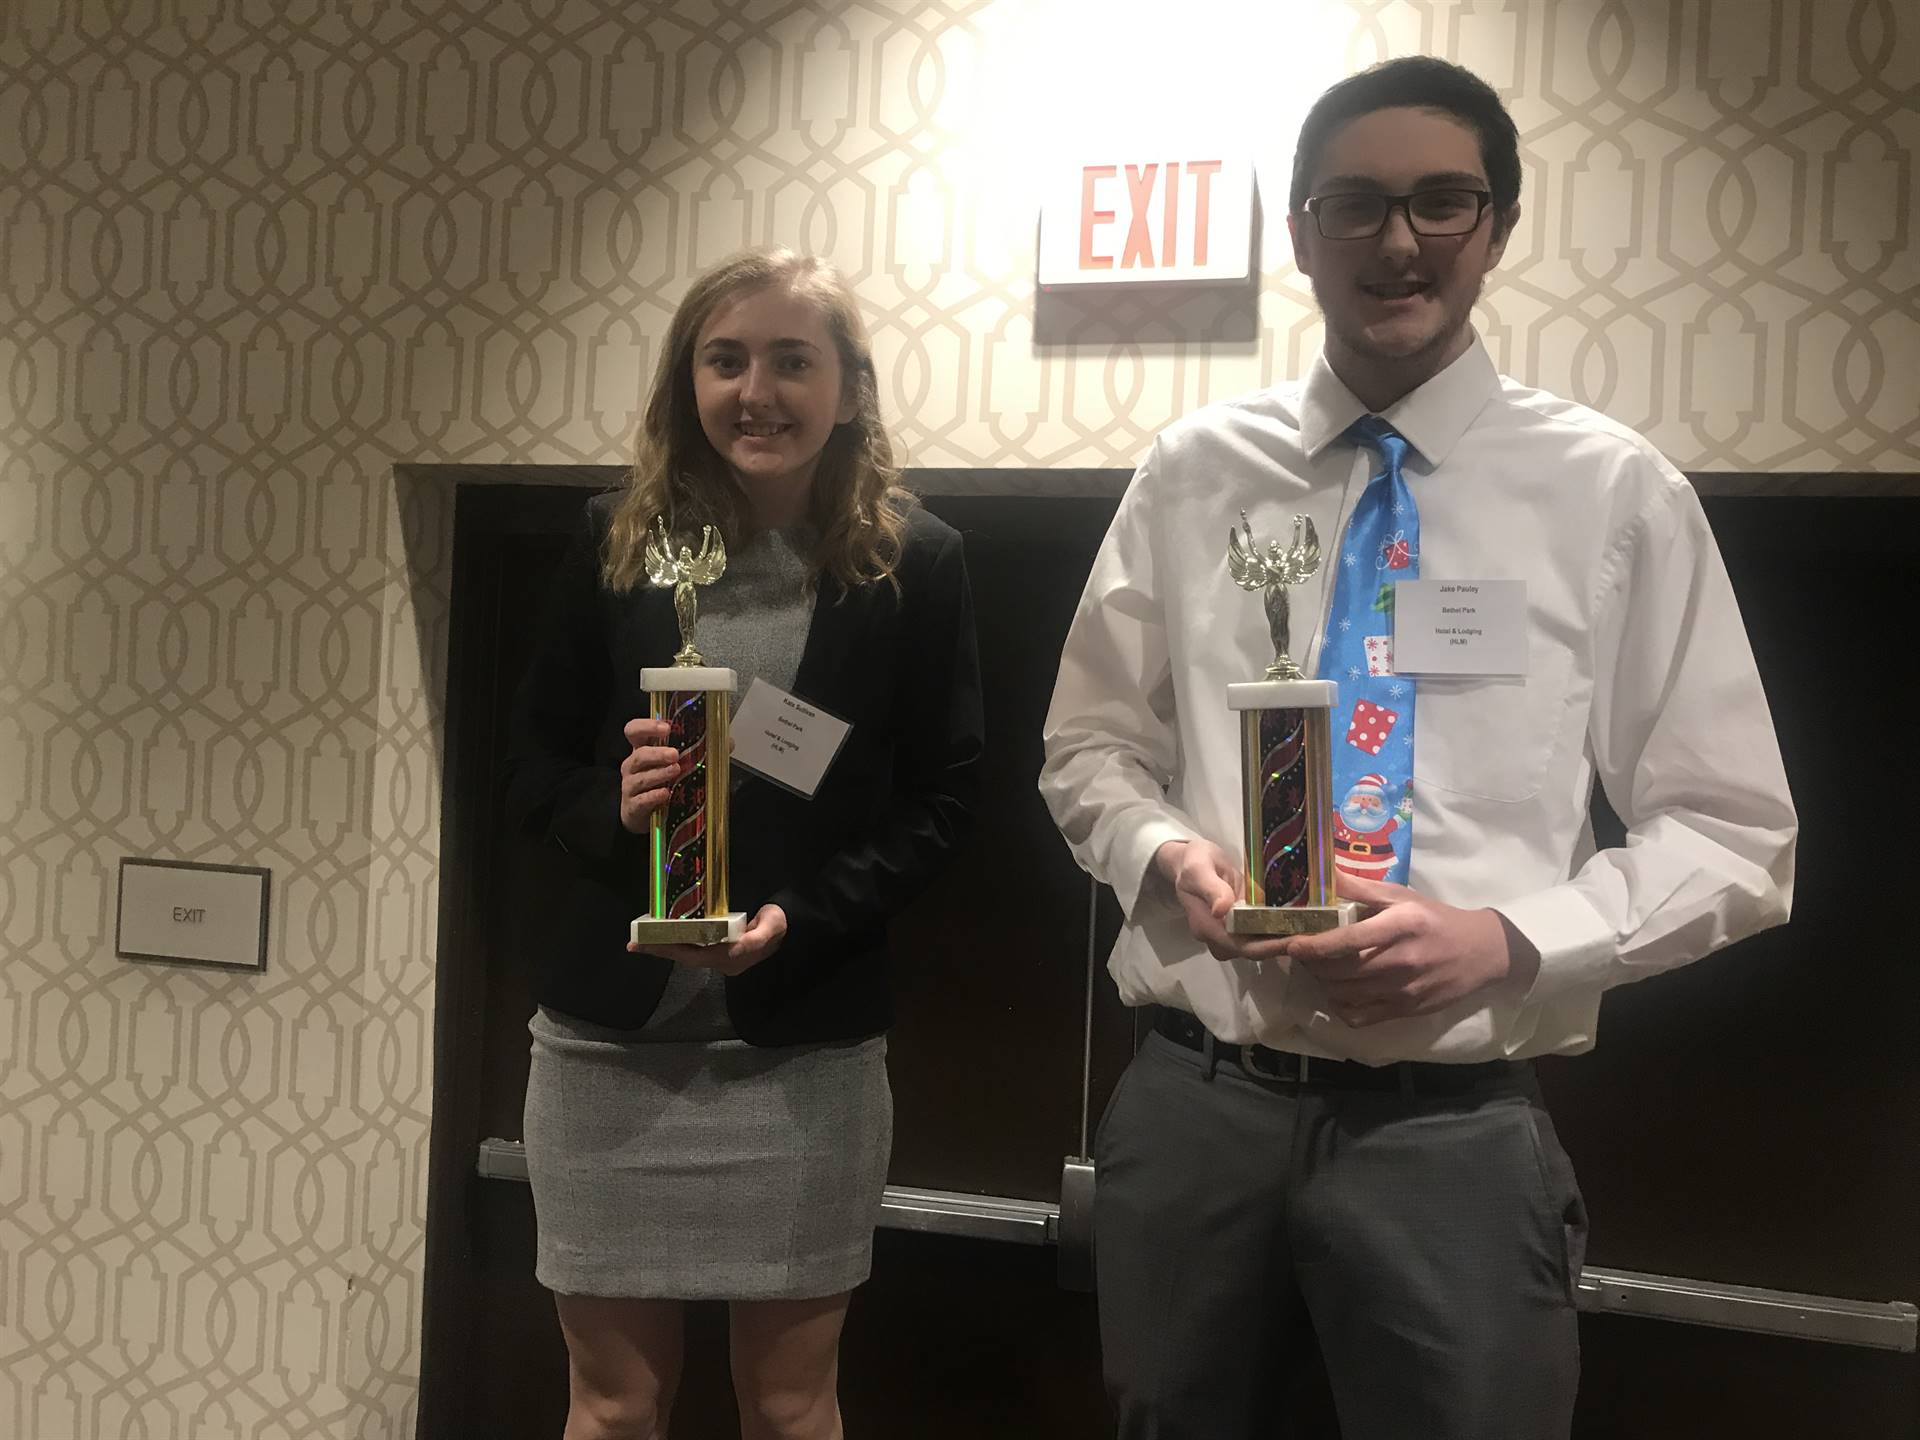 Two students holding their trophies